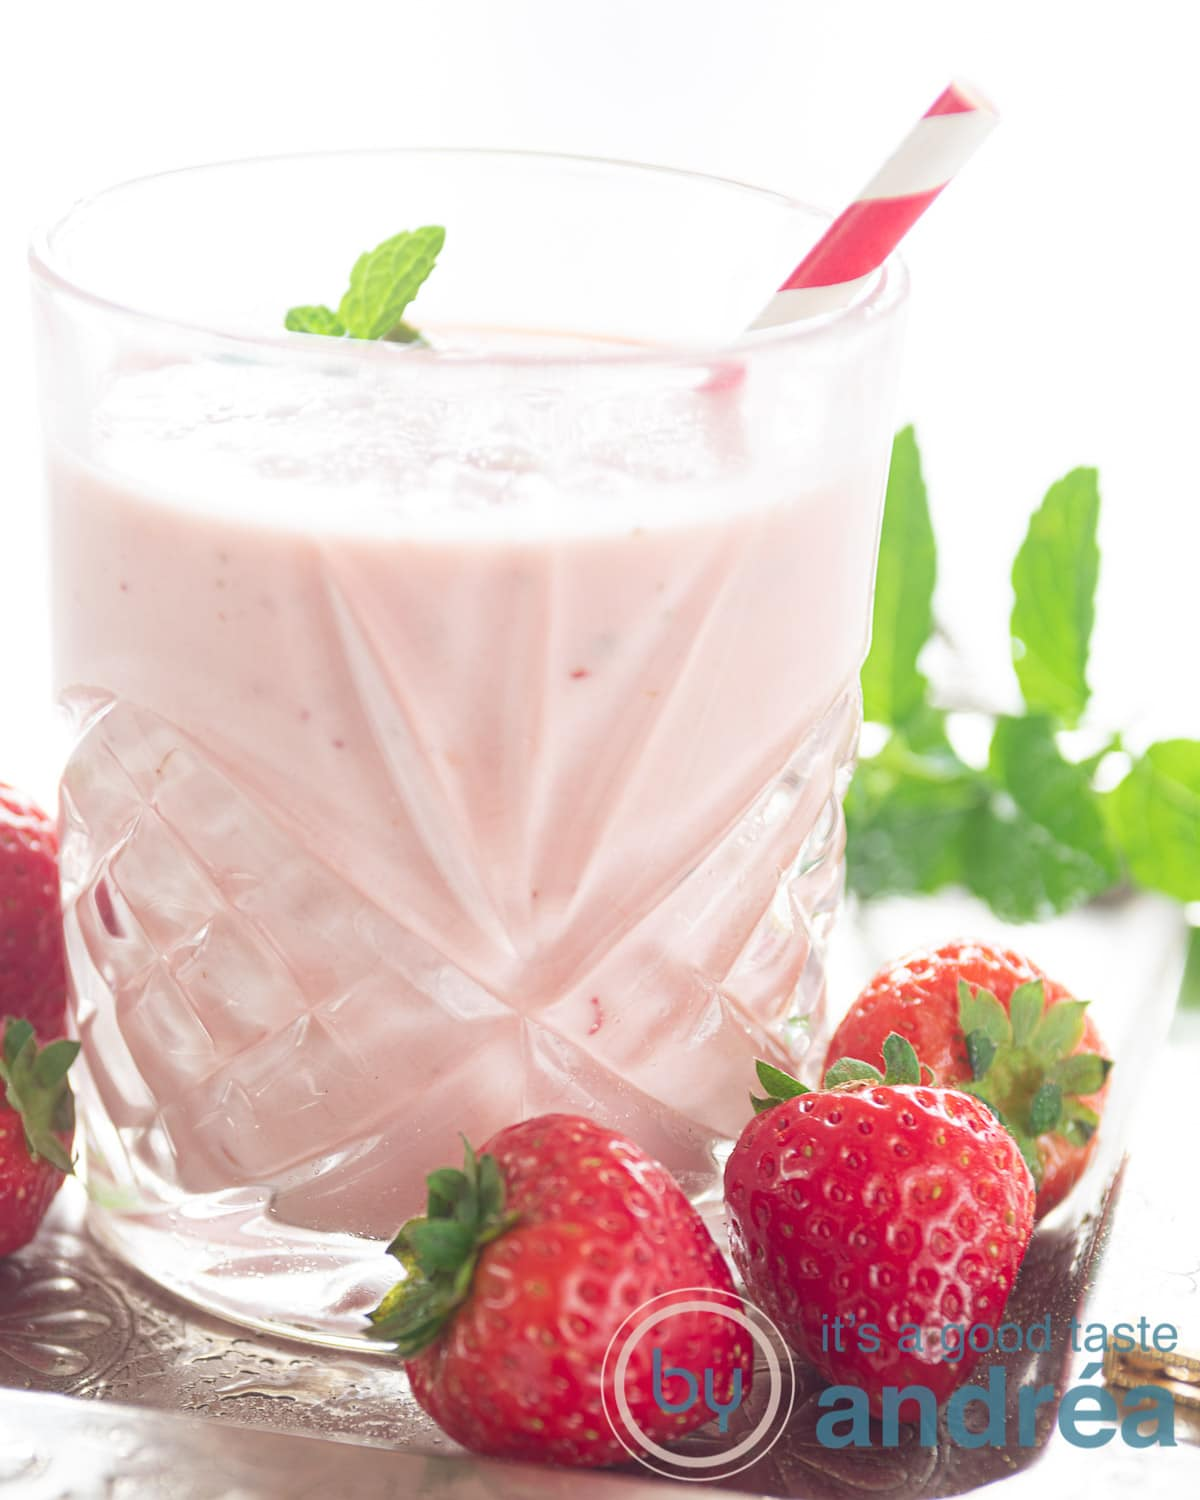 On the left a glass with strawberry smoothie with orange. Some fresh strawberries and mint are on the right side.